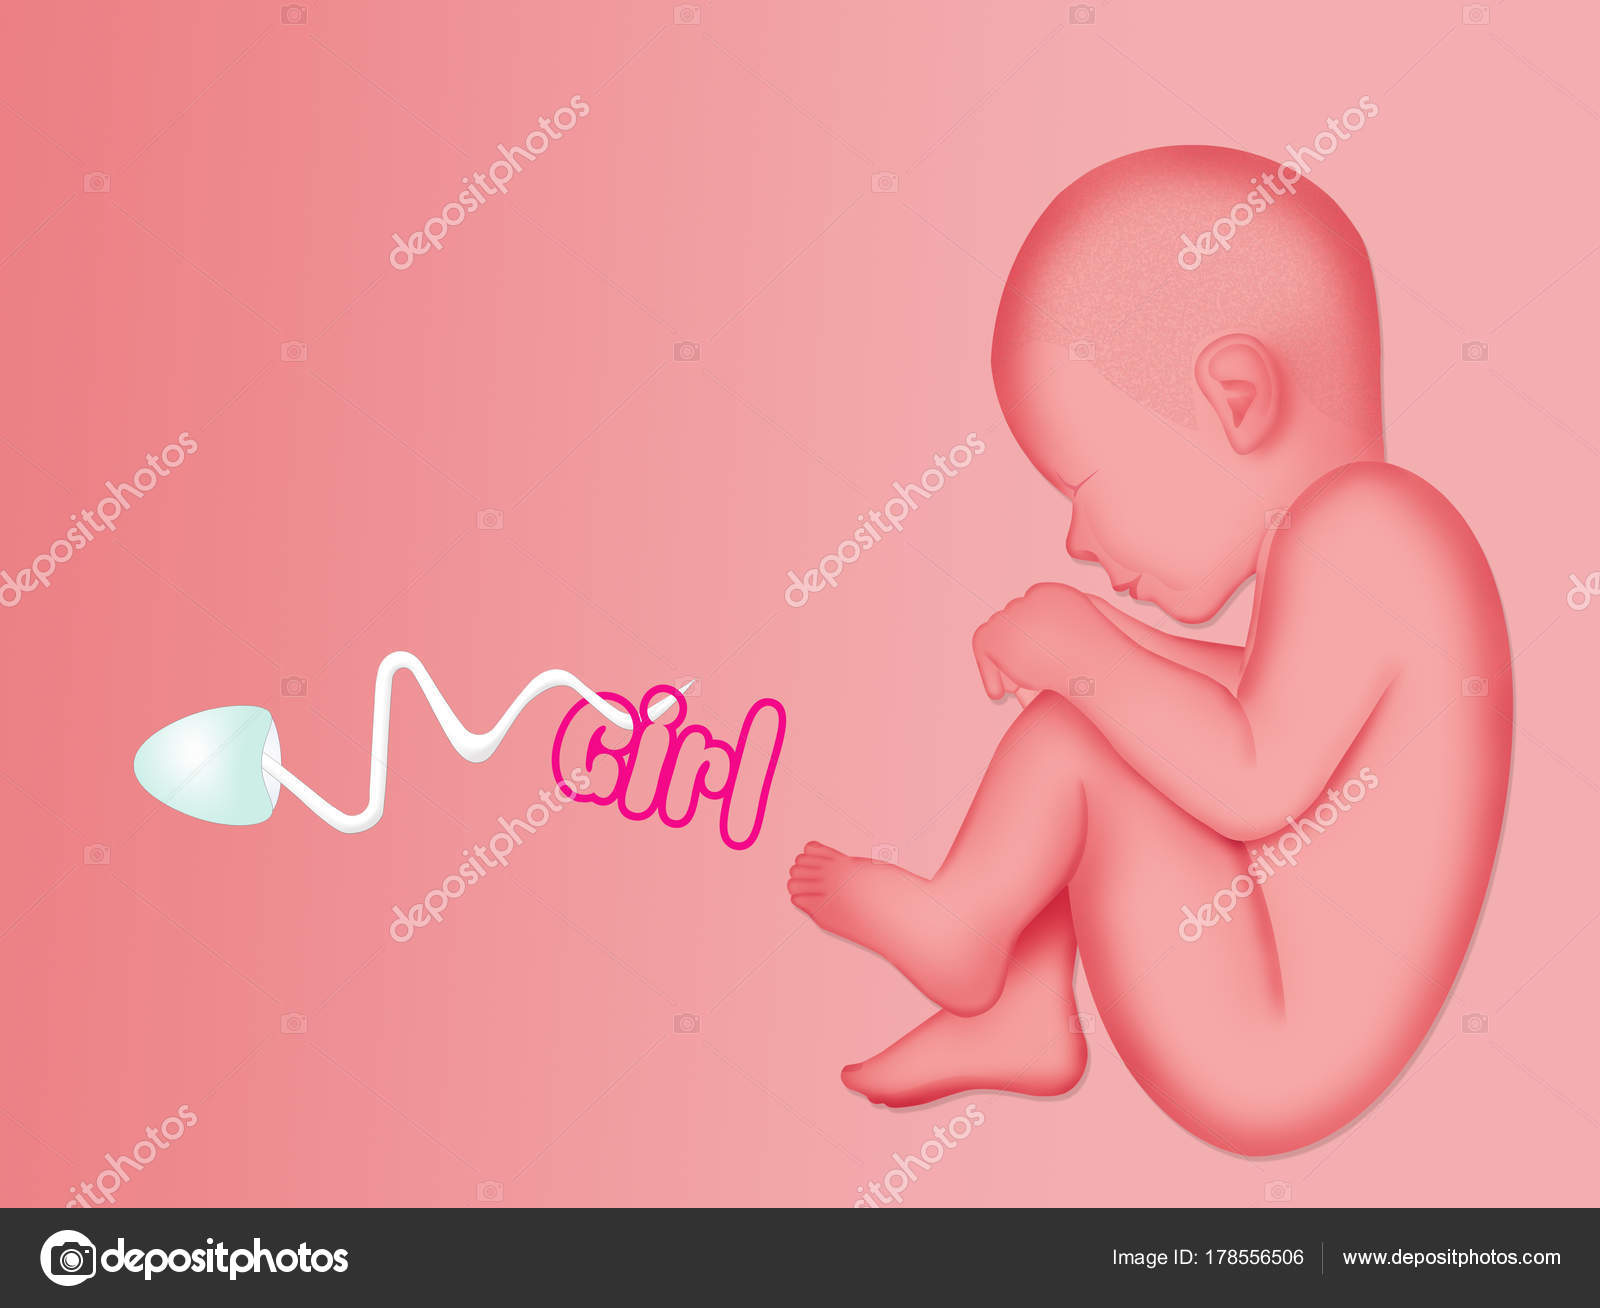 Illustration Announcement Baby Female Stock Photo C Adrenalina - Baby-collection-by-adrenalina